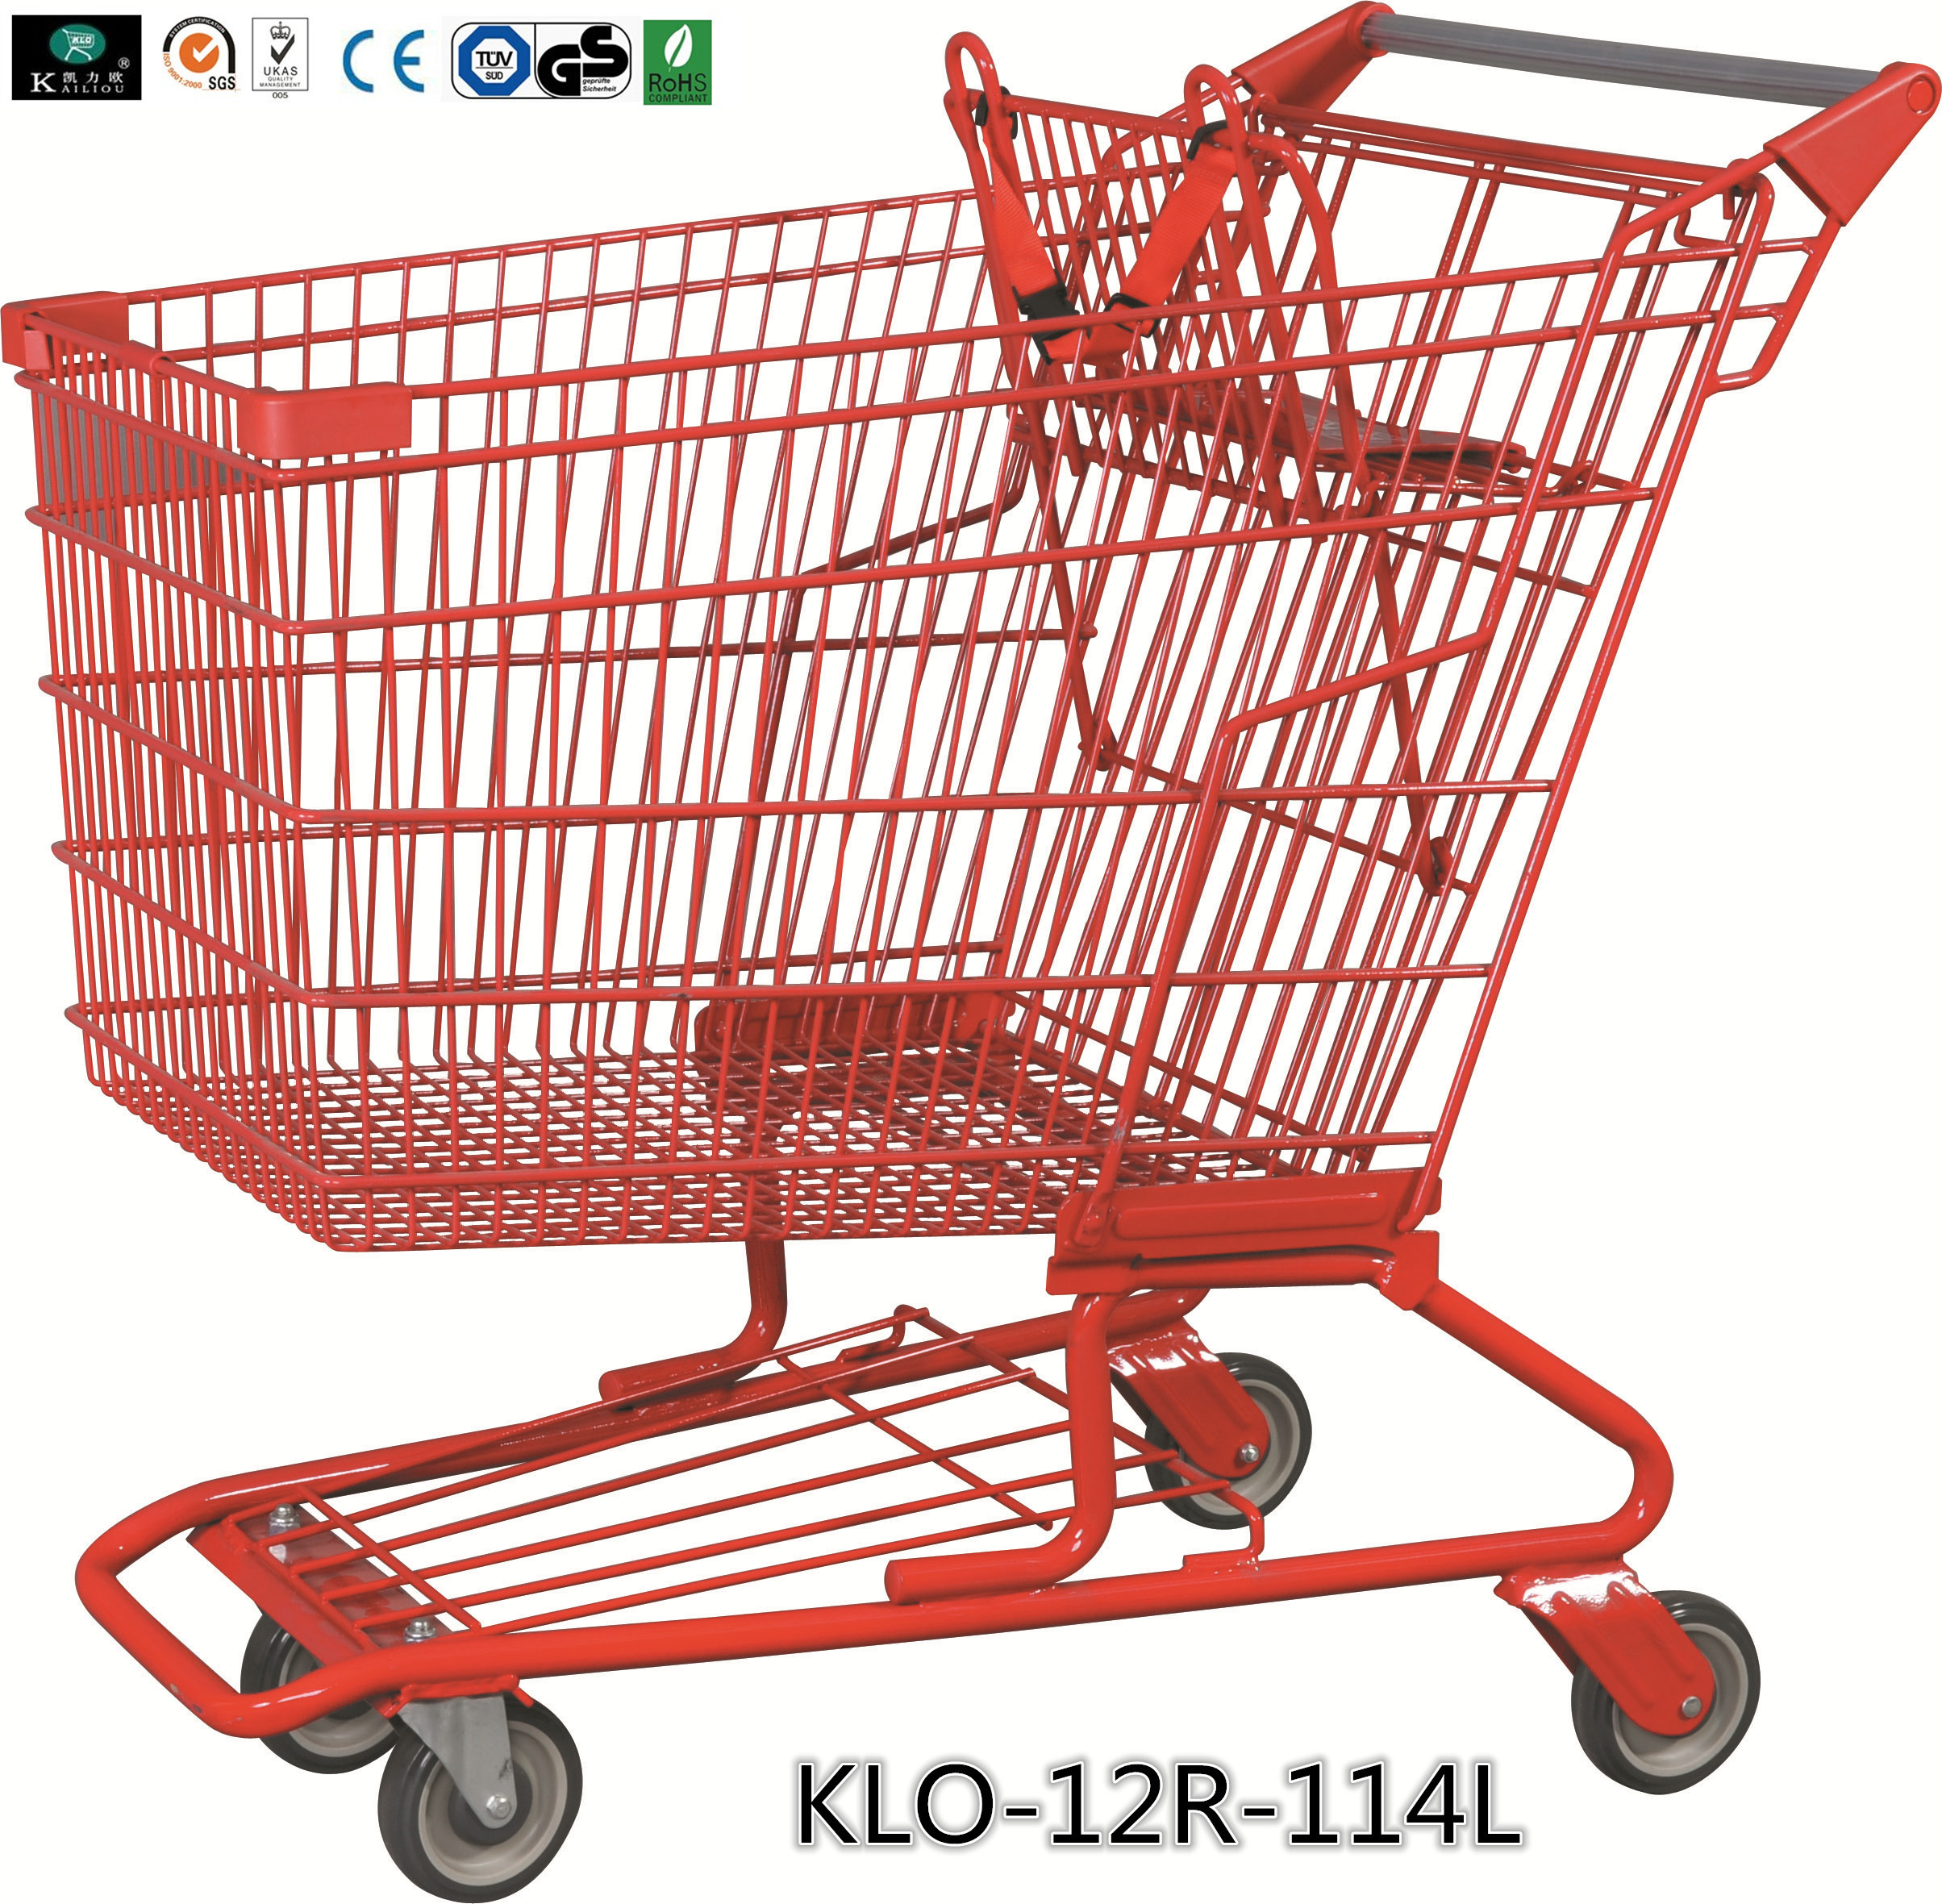 Red Powder Coating Small Metal Shopping Carts For Seniors / Grocery Shopping Trolley